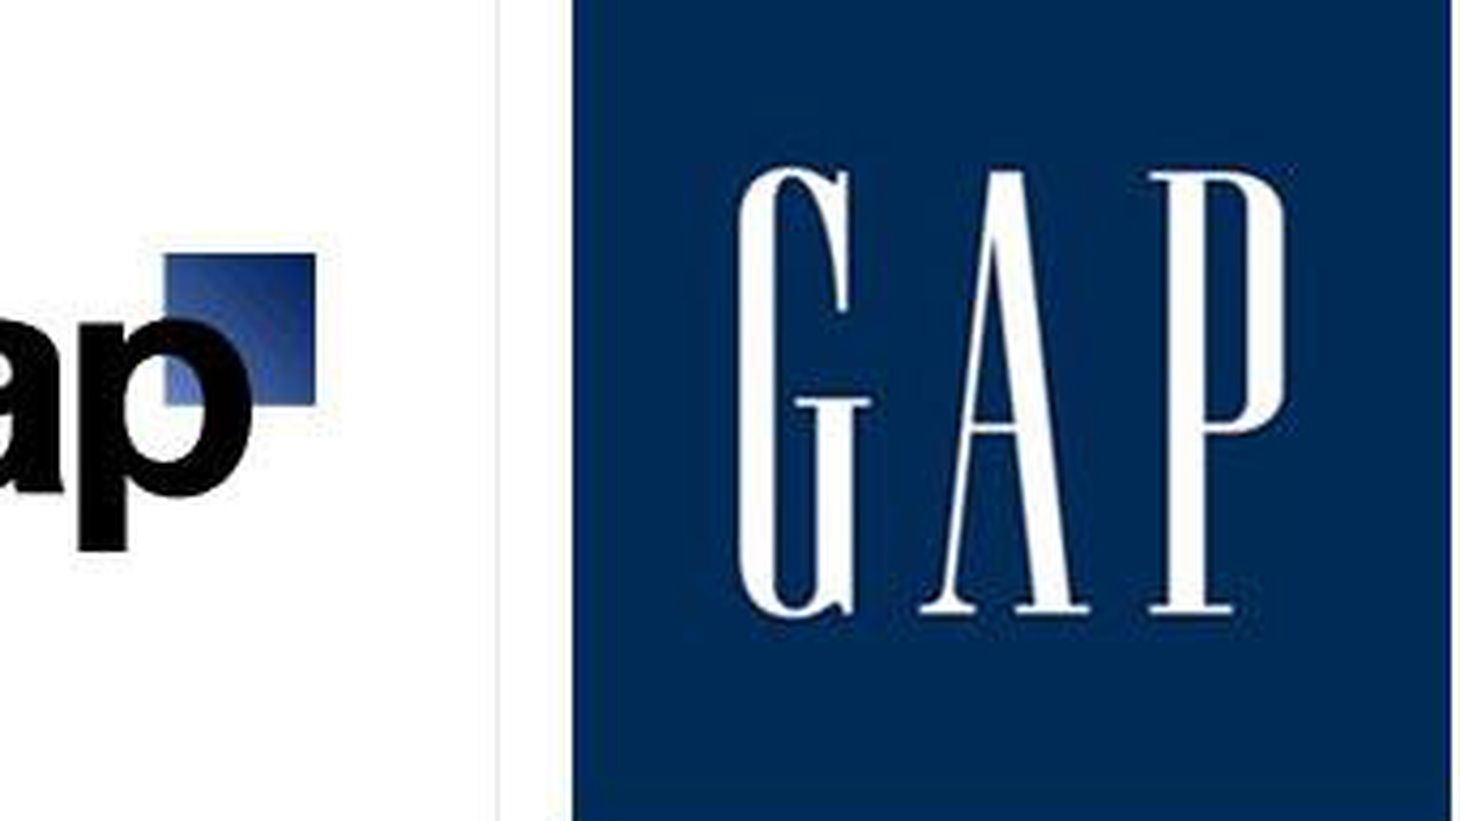 After a lengthy and costly redesign process, Gap unveiled a new logo, to outrage from customers. So they went back to the old one. Frances Anderton talks with branding consultant Sasha Strauss and graphic designer Michael Hodgson about logos. Also, industrial designer Yves Béhar on a Herman Miller chair for our times.